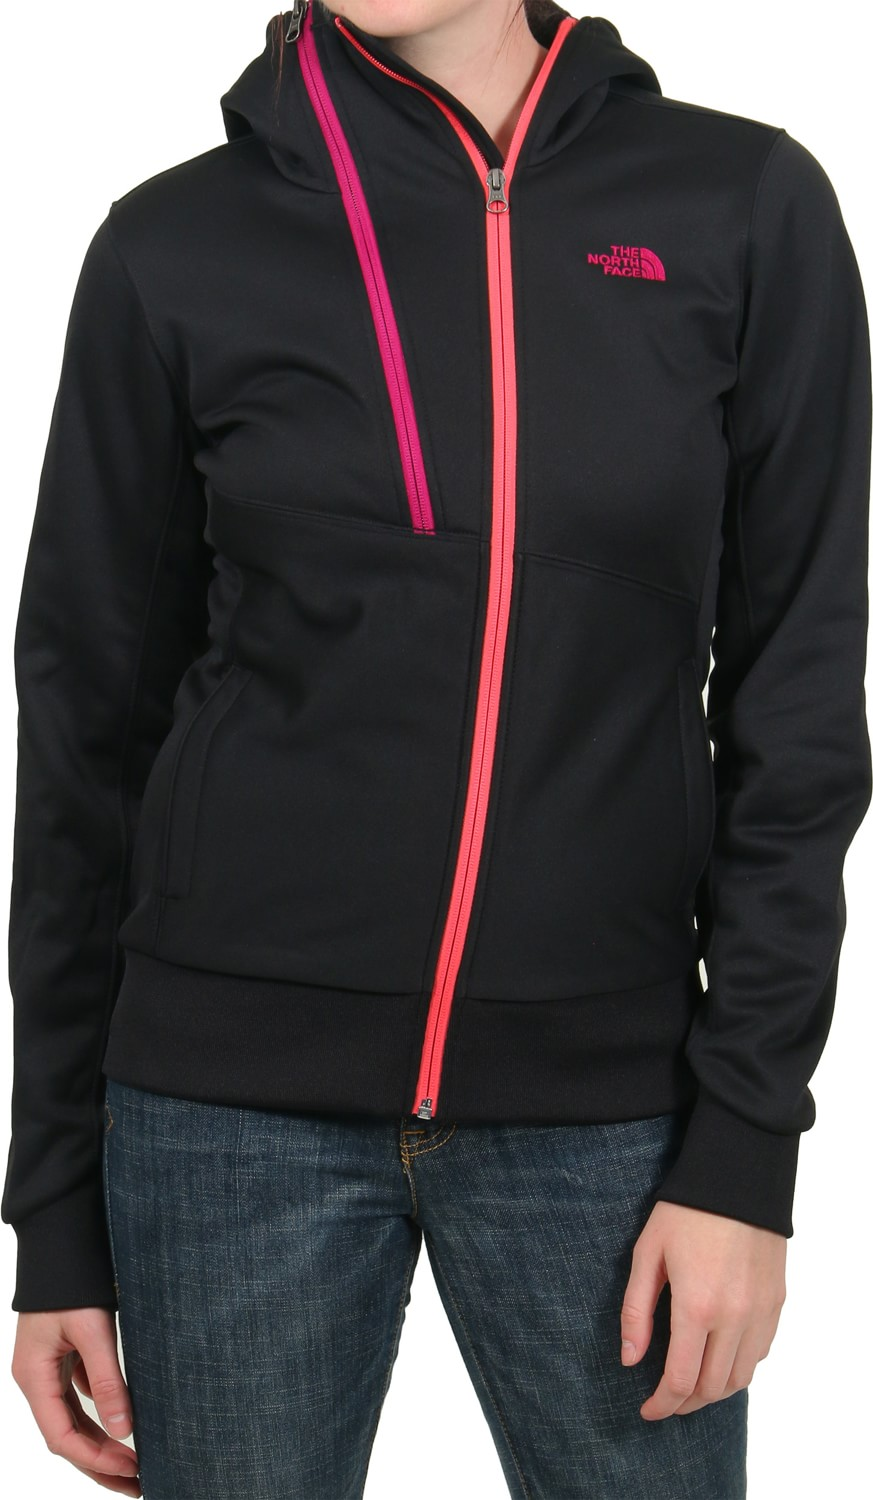 womens hoodies the north face womenu0027s thatch hoodie - tnf black/tnf black QEUVDUJ